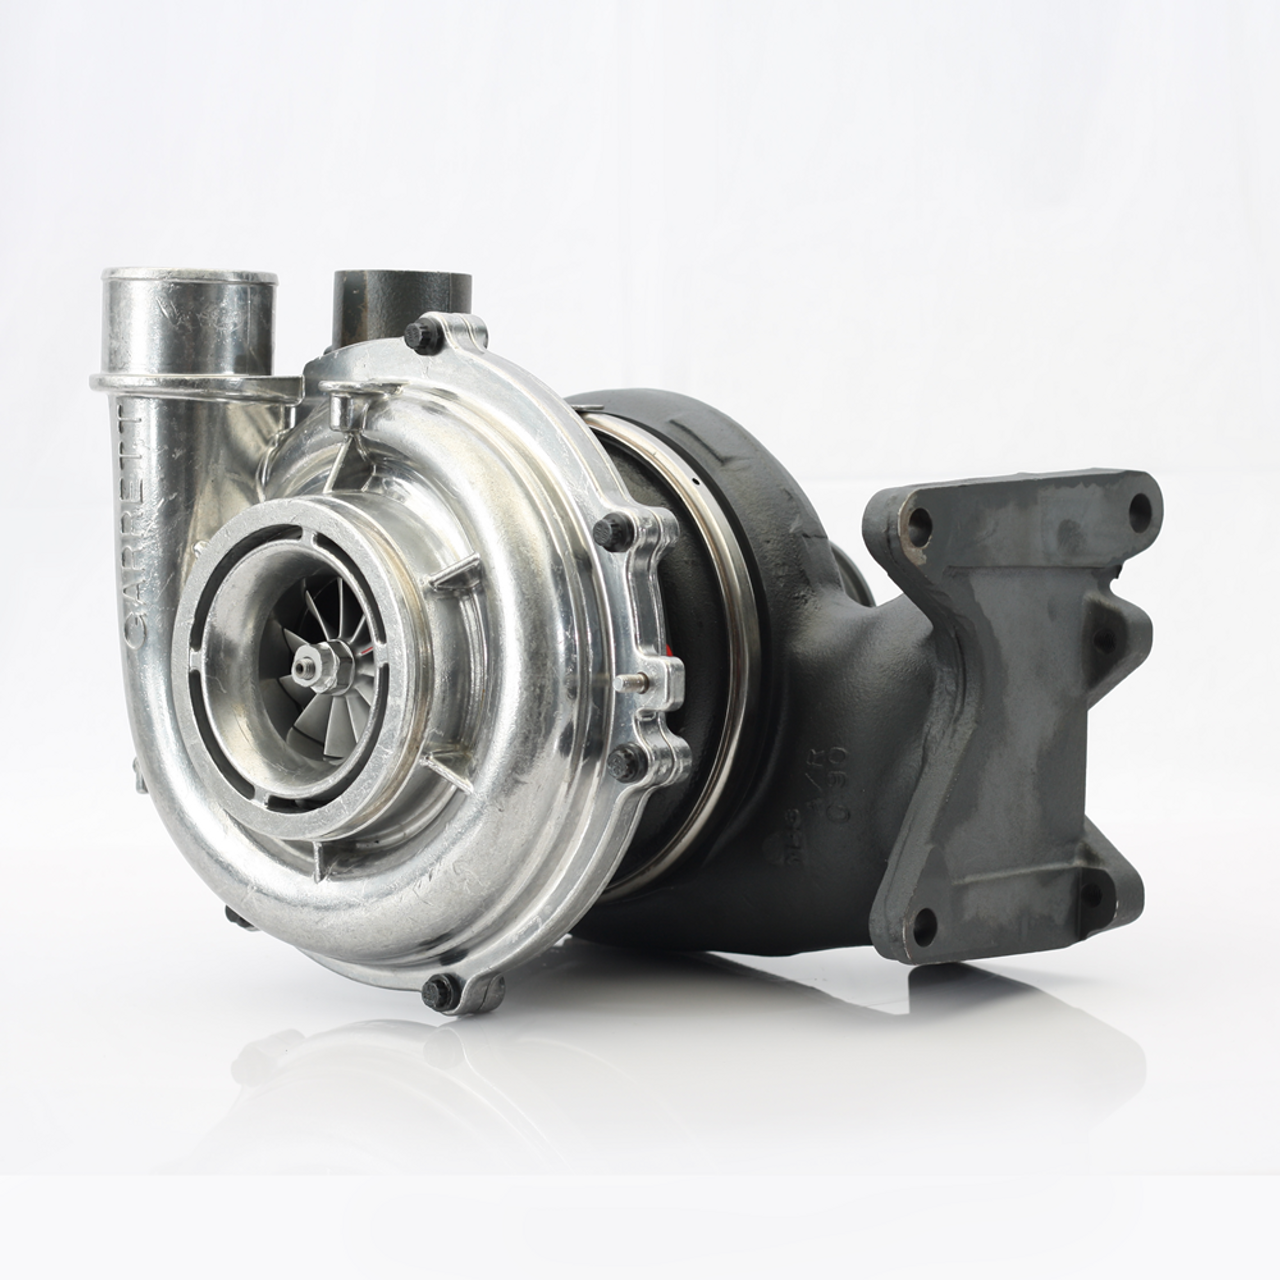 07.5-10 Duramax 6.6 LMM Duramax Replacement Turbocharger